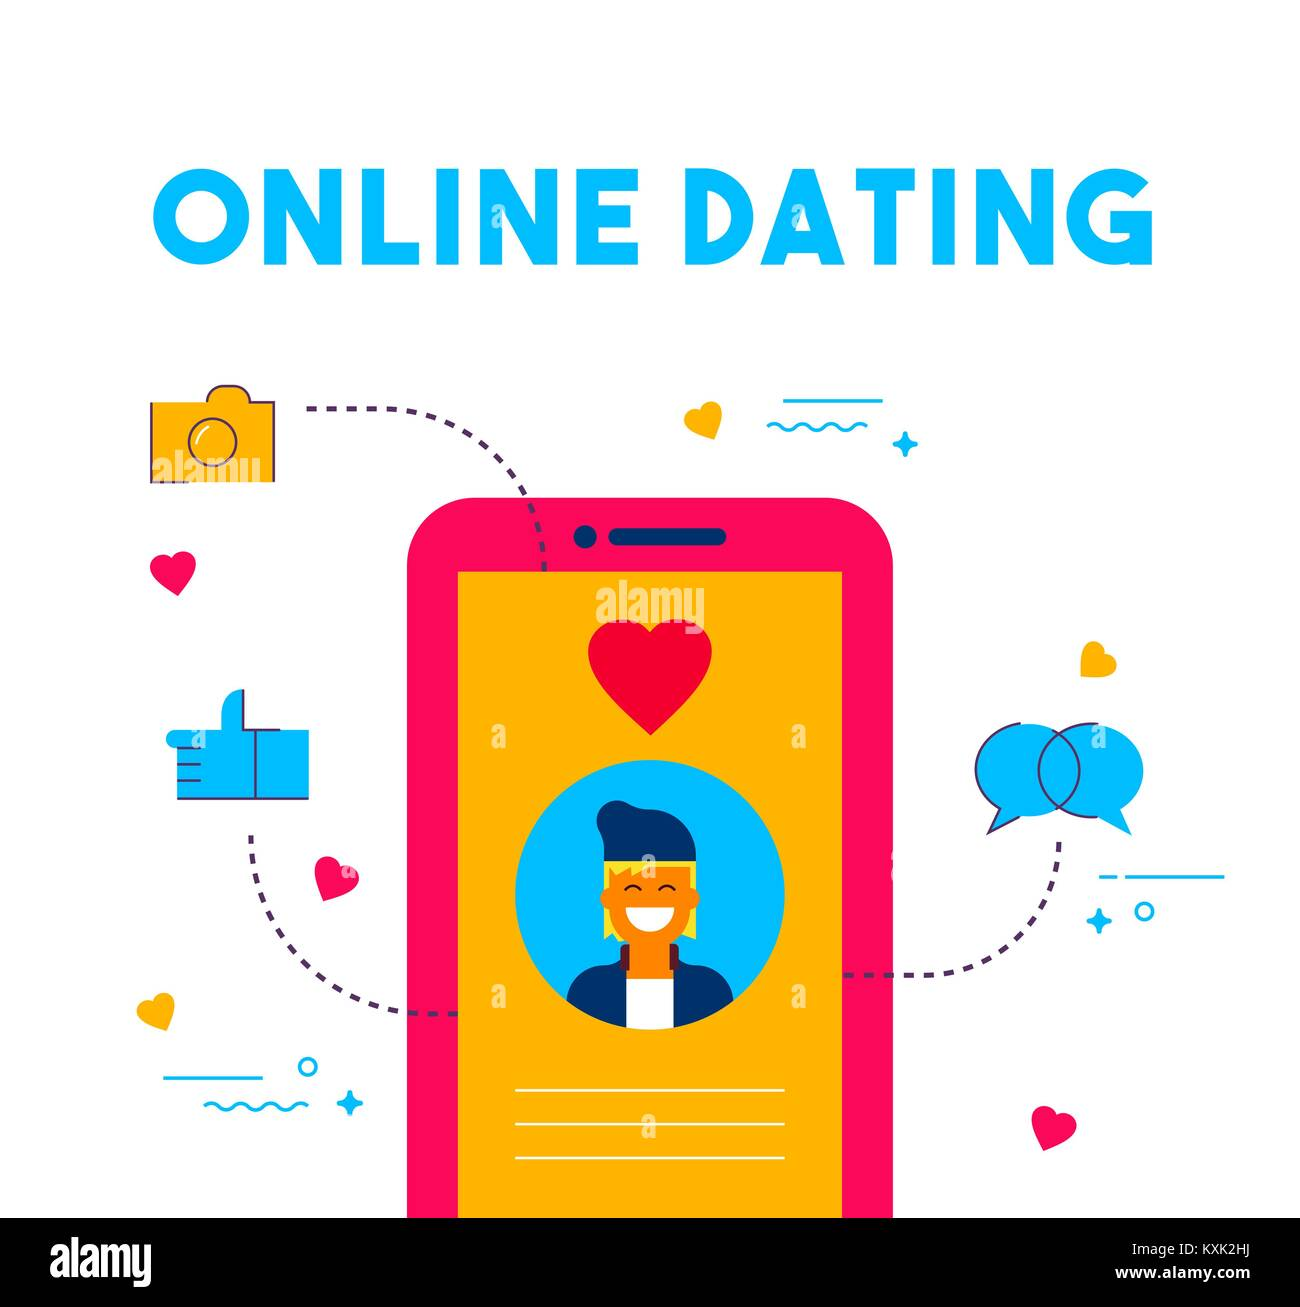 Is Online Dating Considered Social Networking